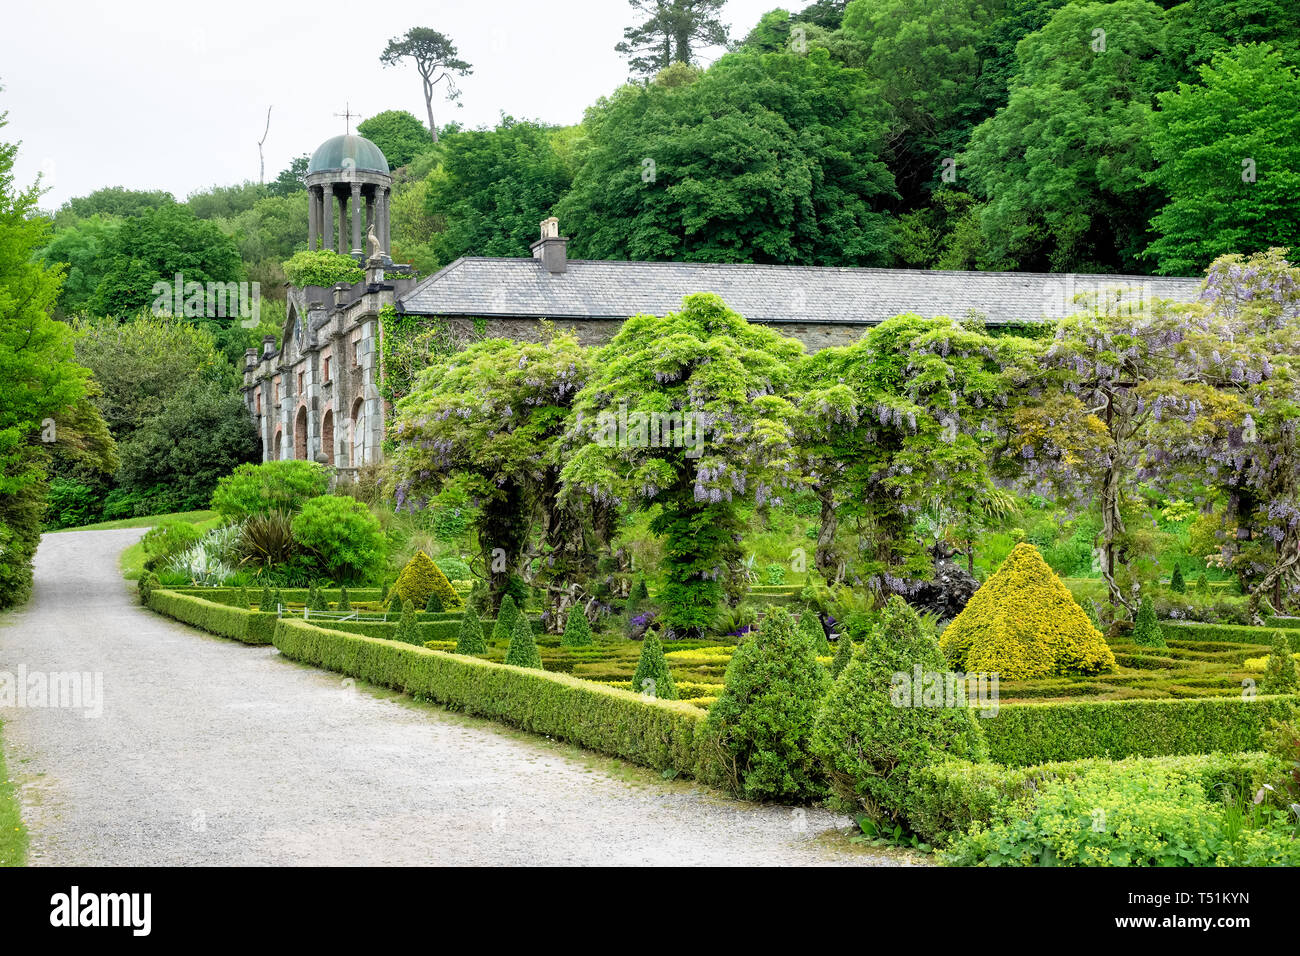 Bantry House in Bantry County Cork, Ireland.The origins of this house date back to 1765 and has been in the ownership of the same family since then. Stock Photo